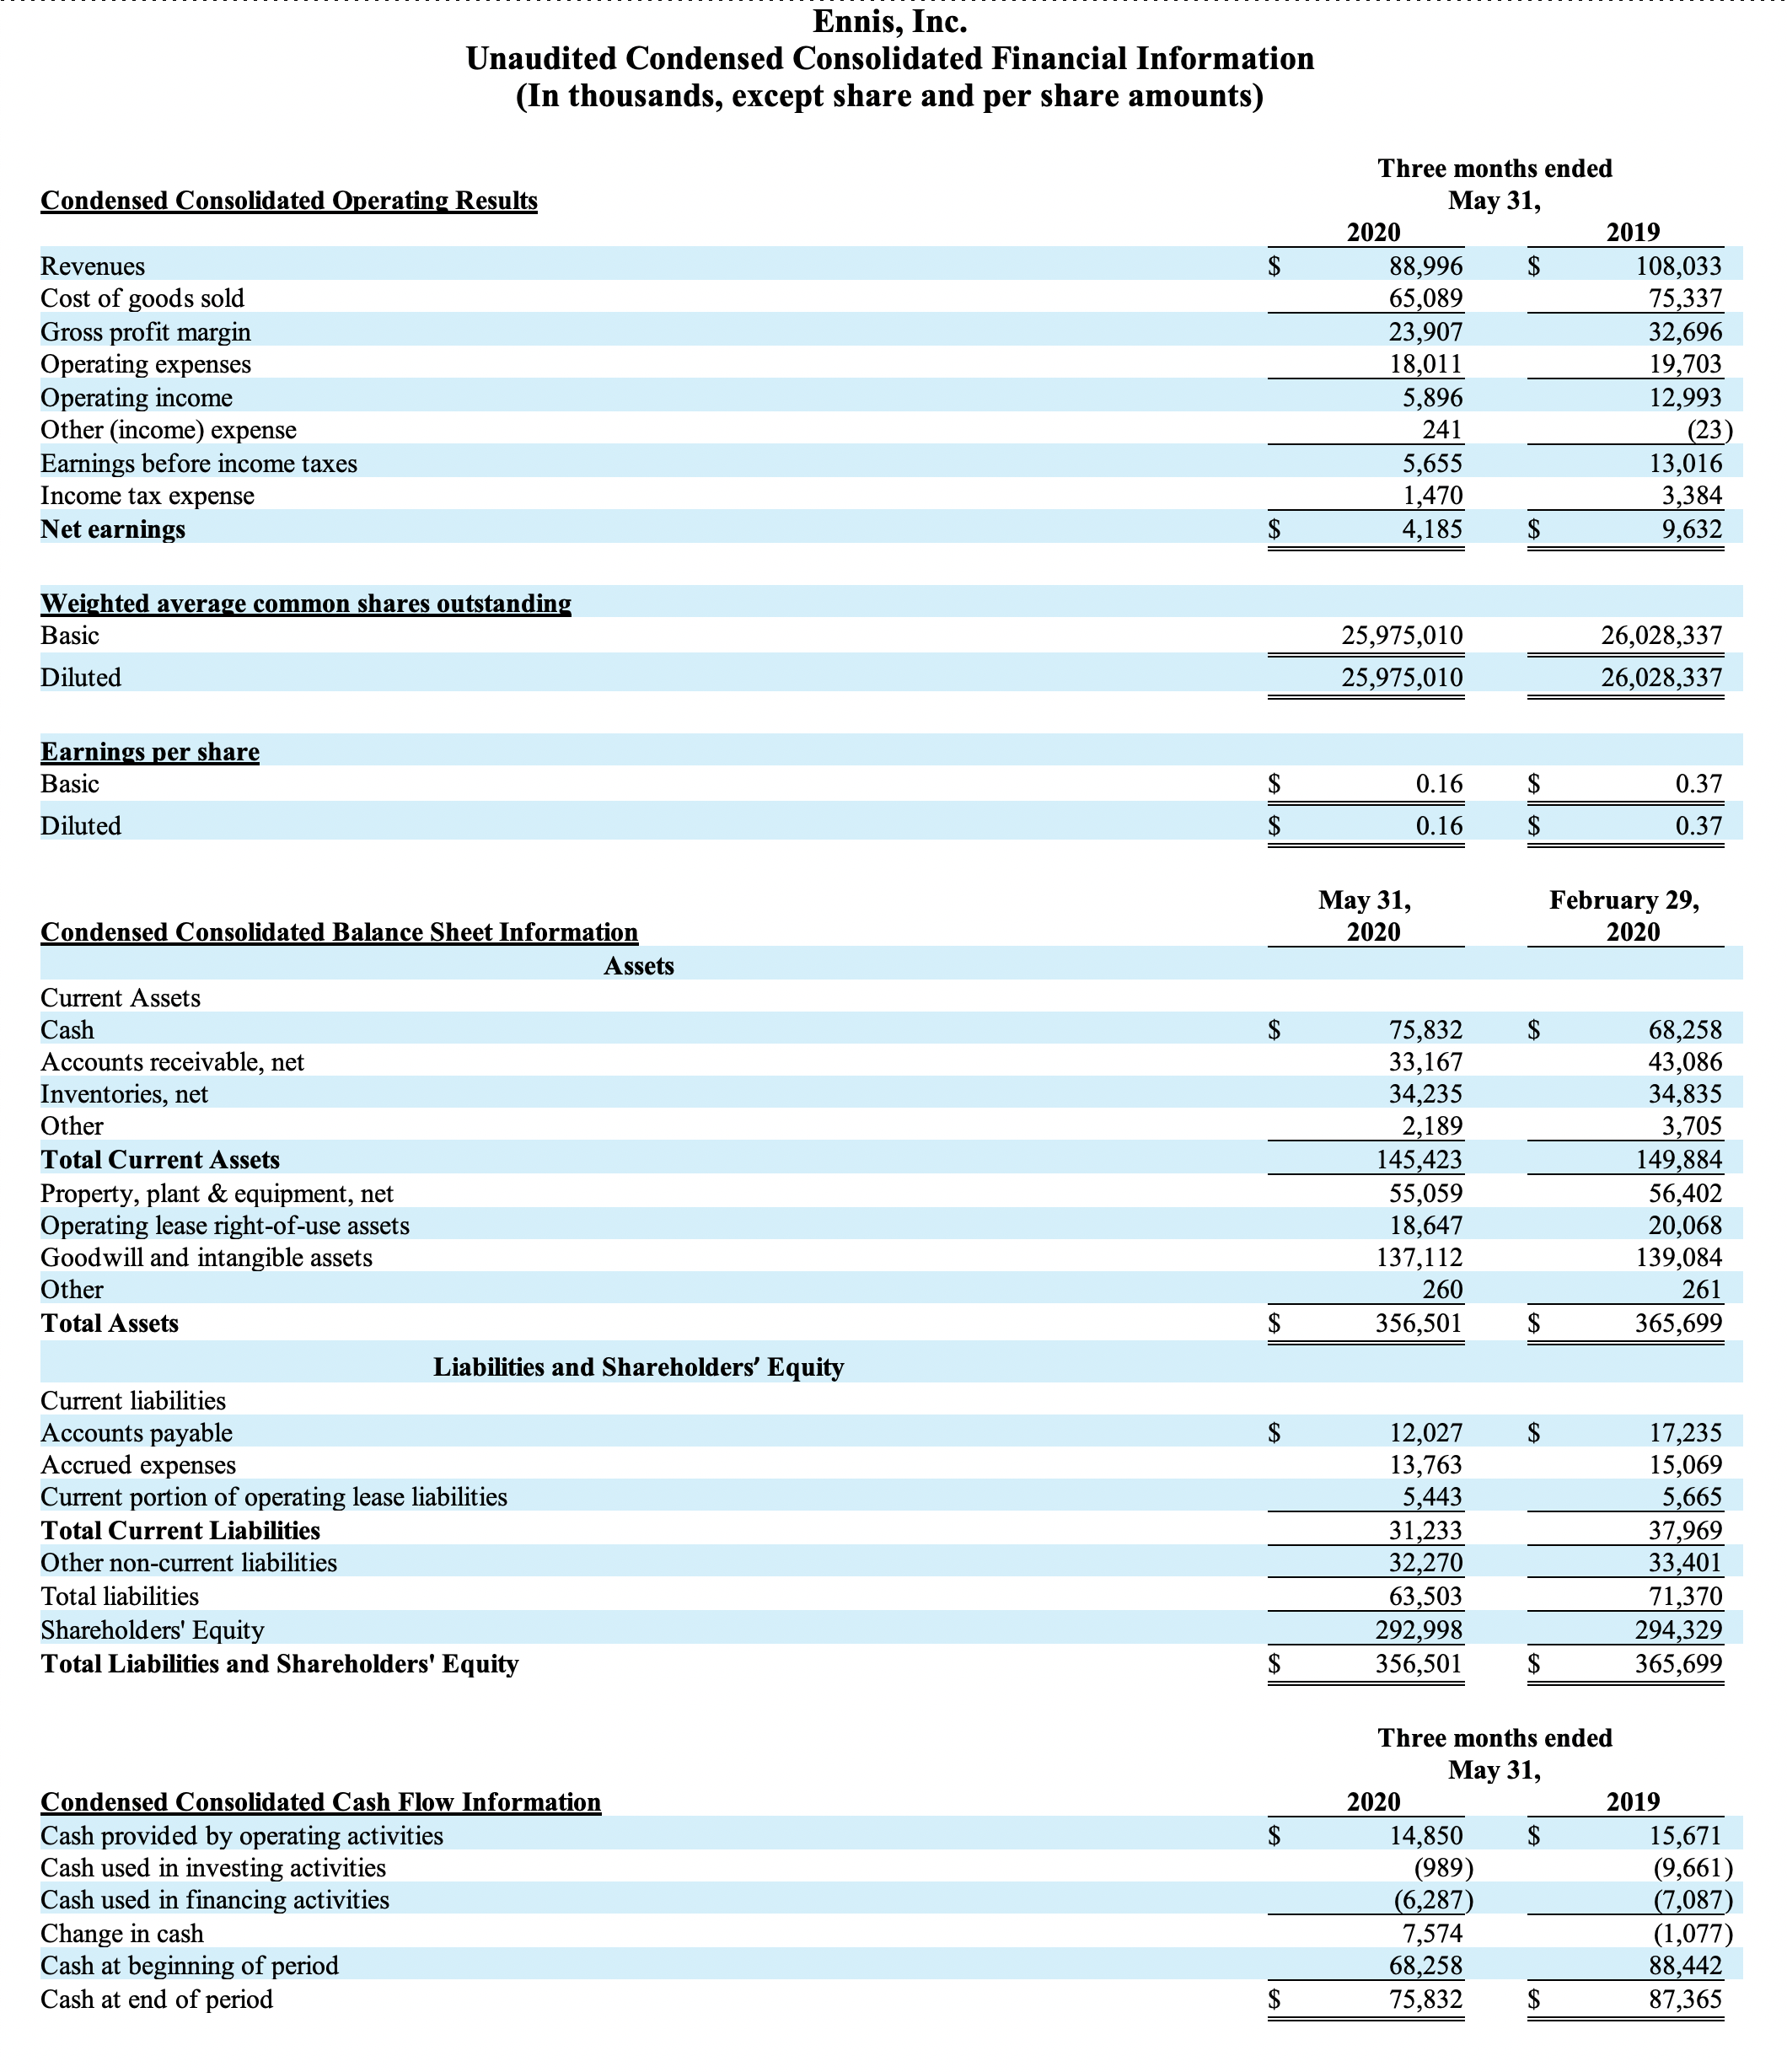 Quarter Ended 5-31-20 Unaudited Condensed Consolidated Financial Information.